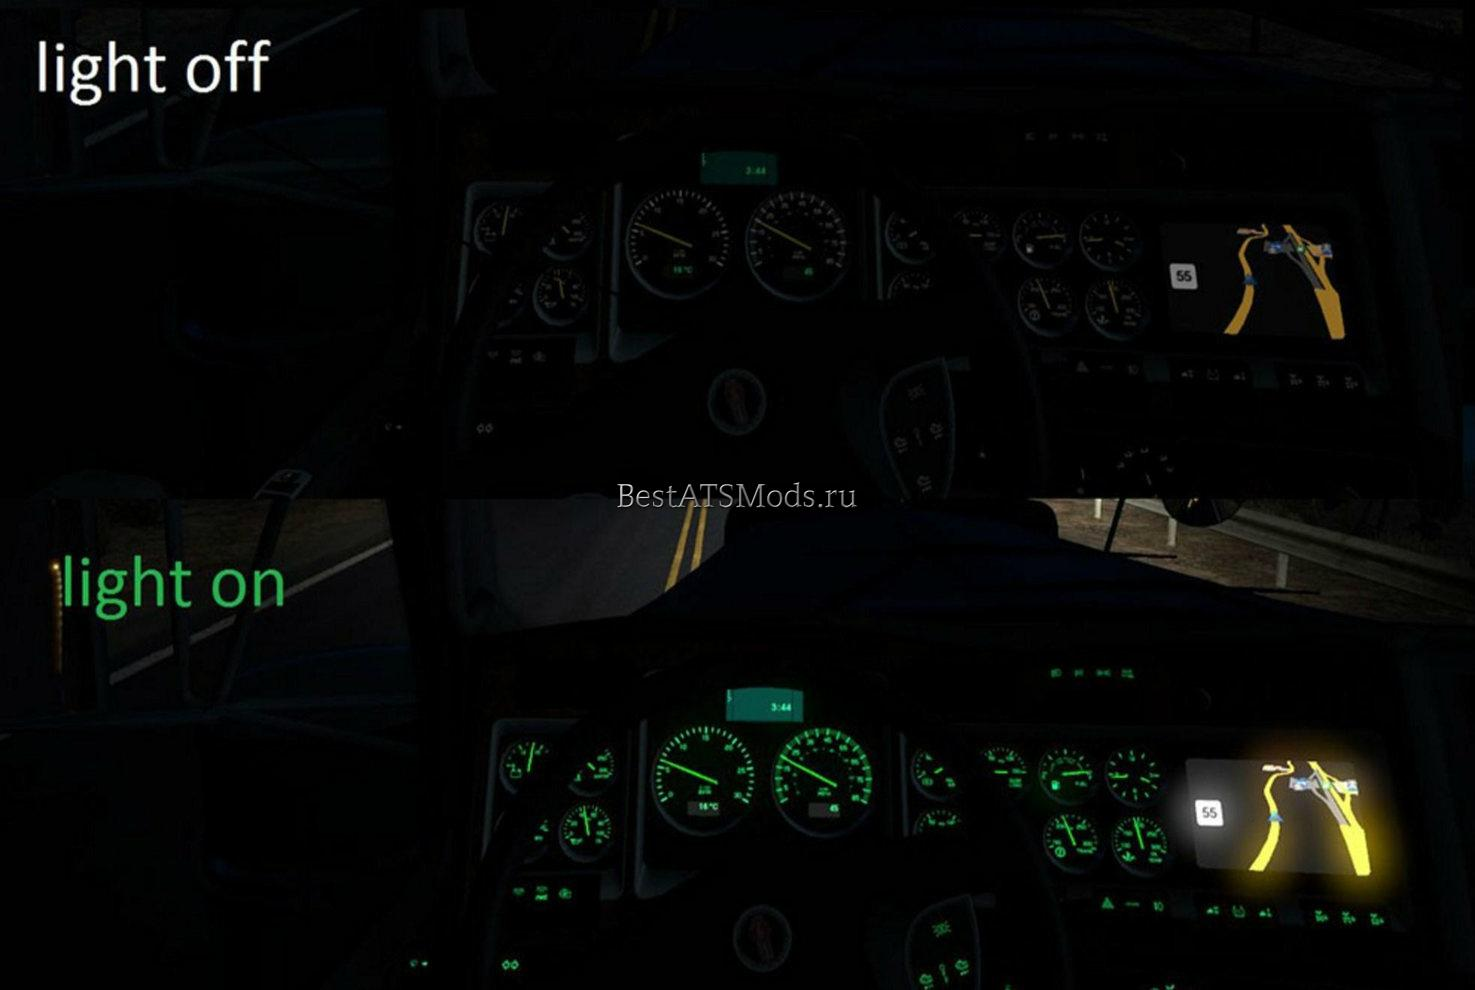 rsz_Мод_зеленая_приборная_панель_kenworth_w900_green_dashboard_mod_american_truck_simulator